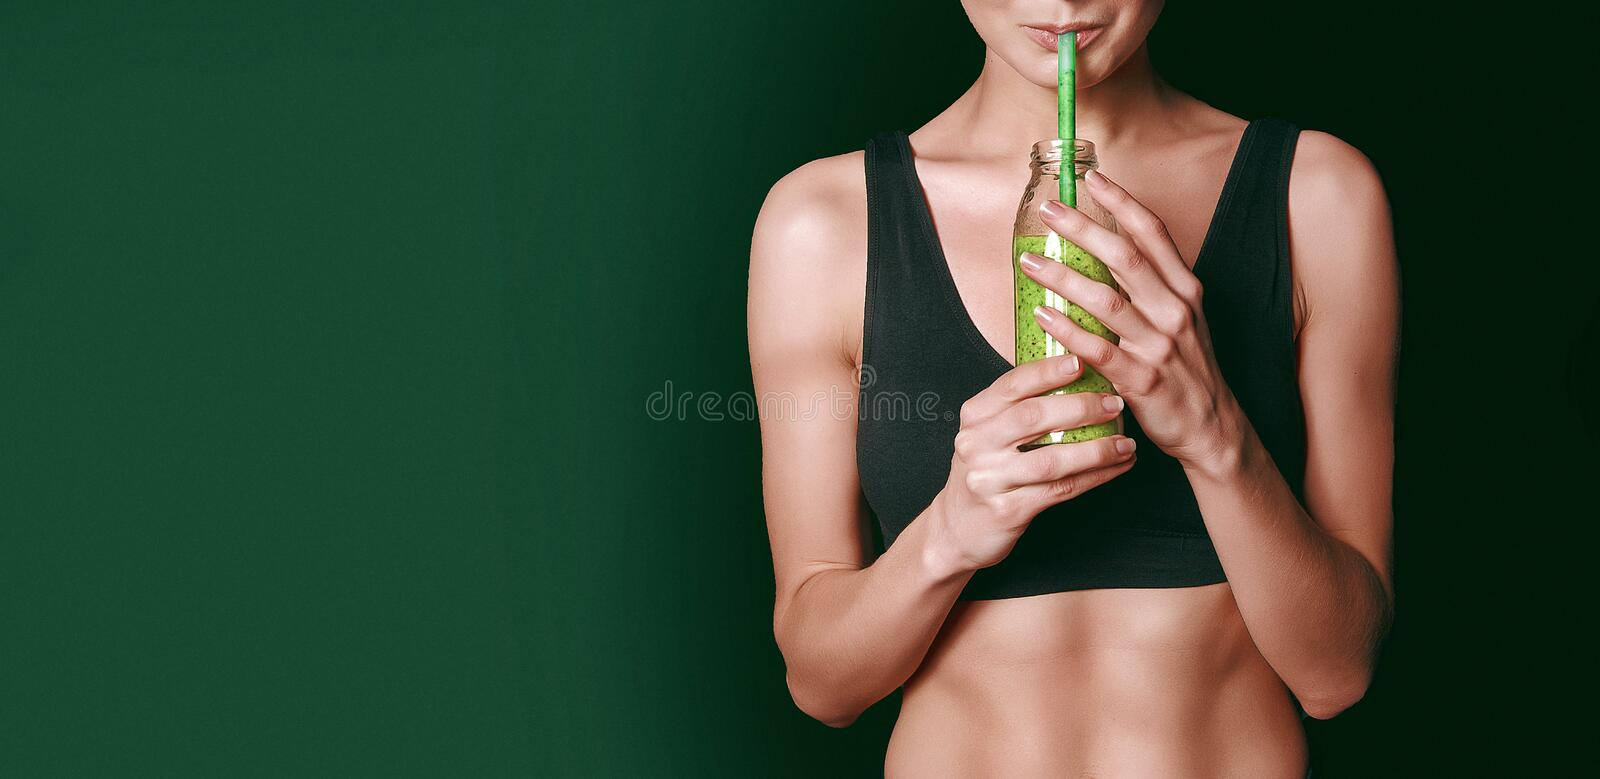 A girl in a black sports top holds a jar of vegetable smoothies in her hands royalty free stock photo